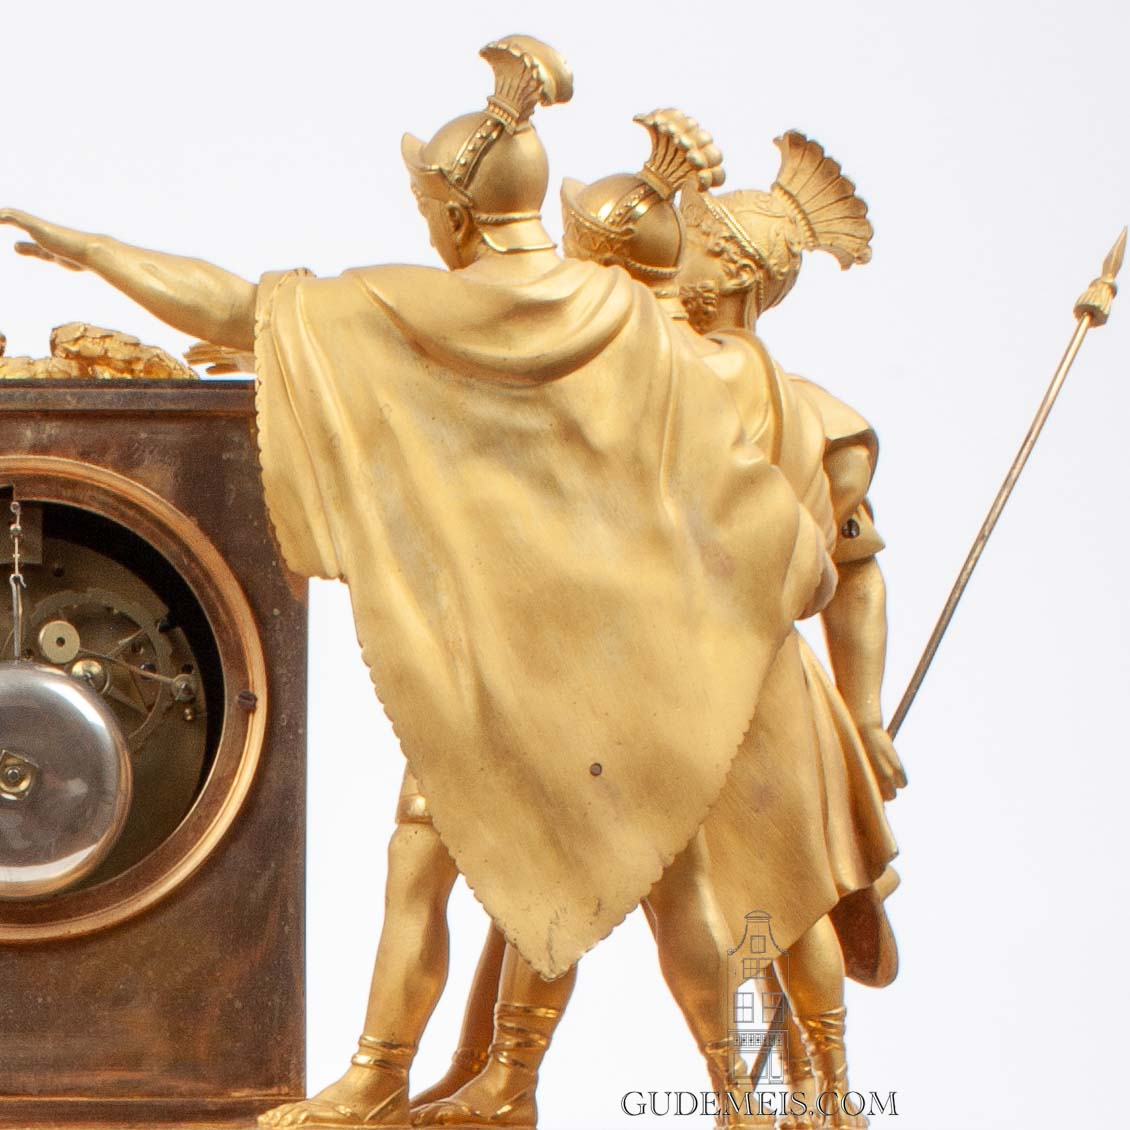 Oath-of-the-horatii-French-Empire-sculptural-gilt-bronze-striking-antique-clock-Jacques-Louis-David